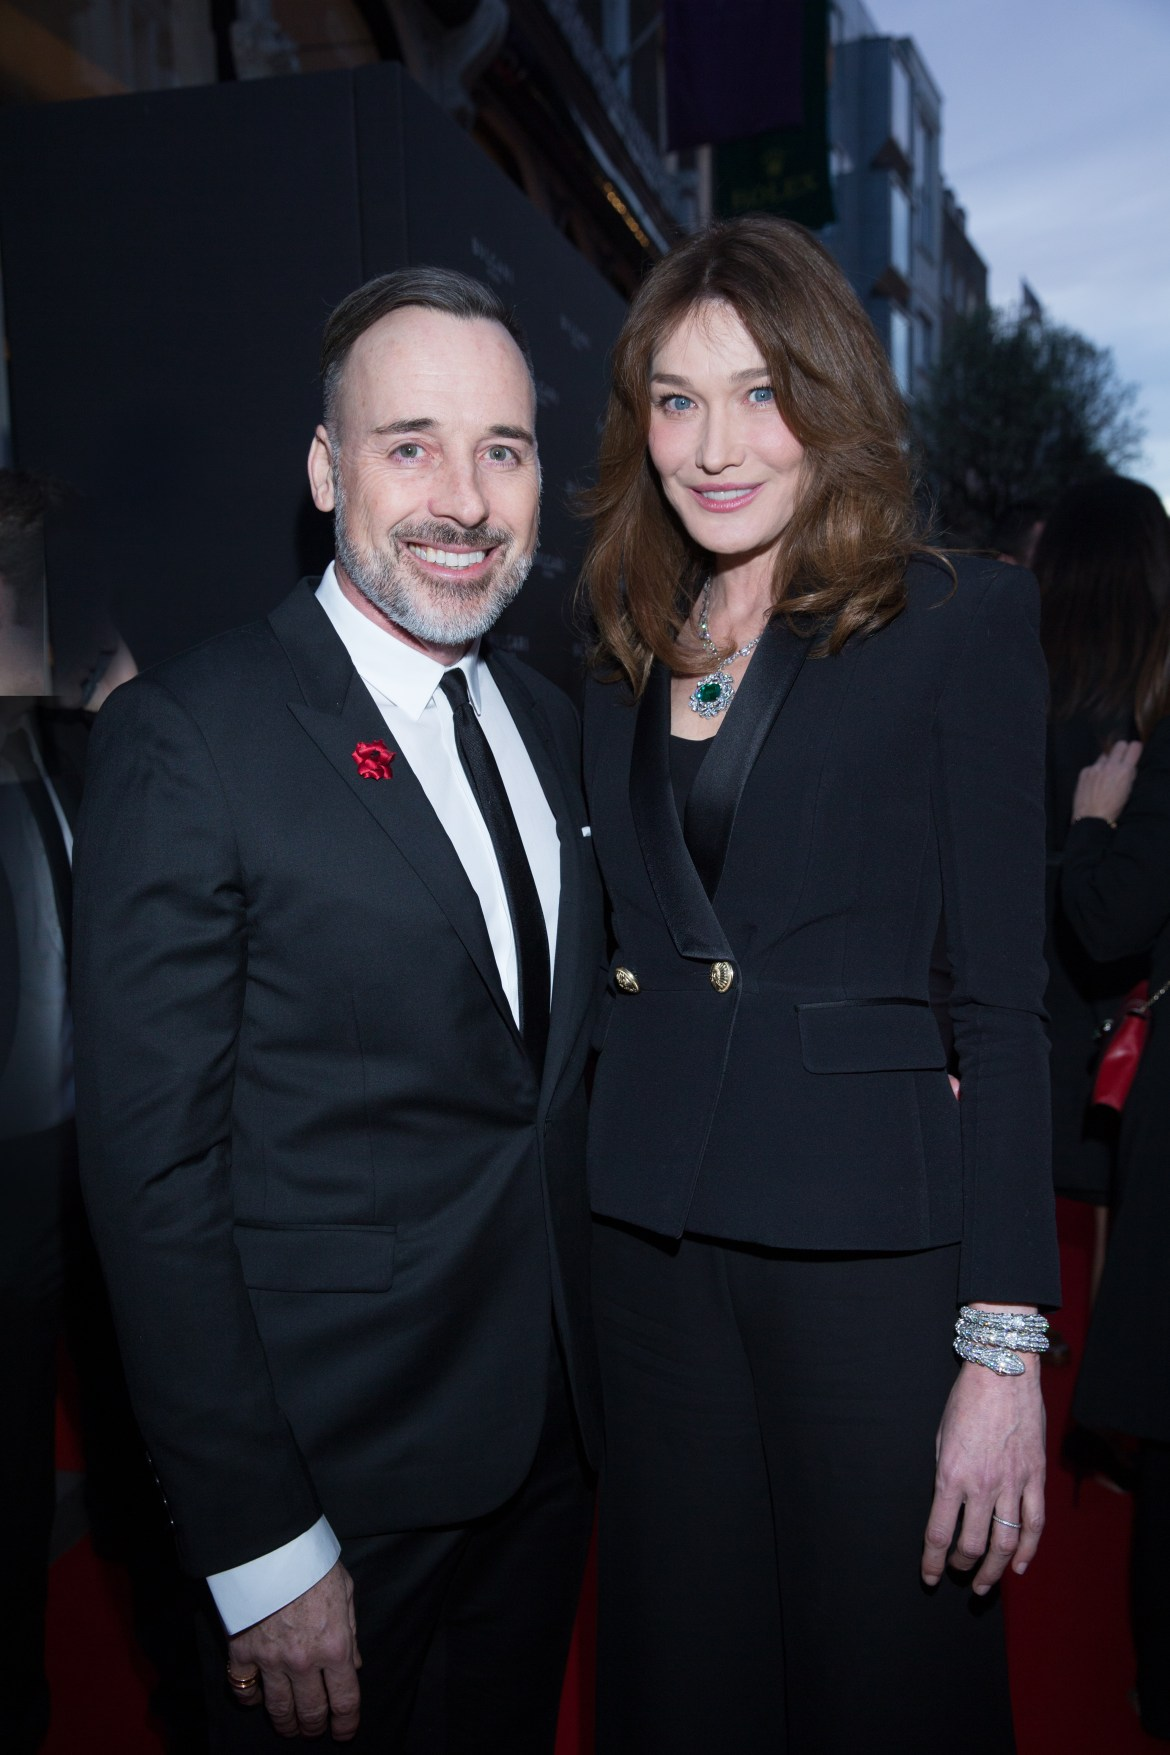 David FURNISH. Carla BRUNI-SARKOZY.. Bulgari Opening New Bond Street. London. UK. 14/3/2016 © david atlan